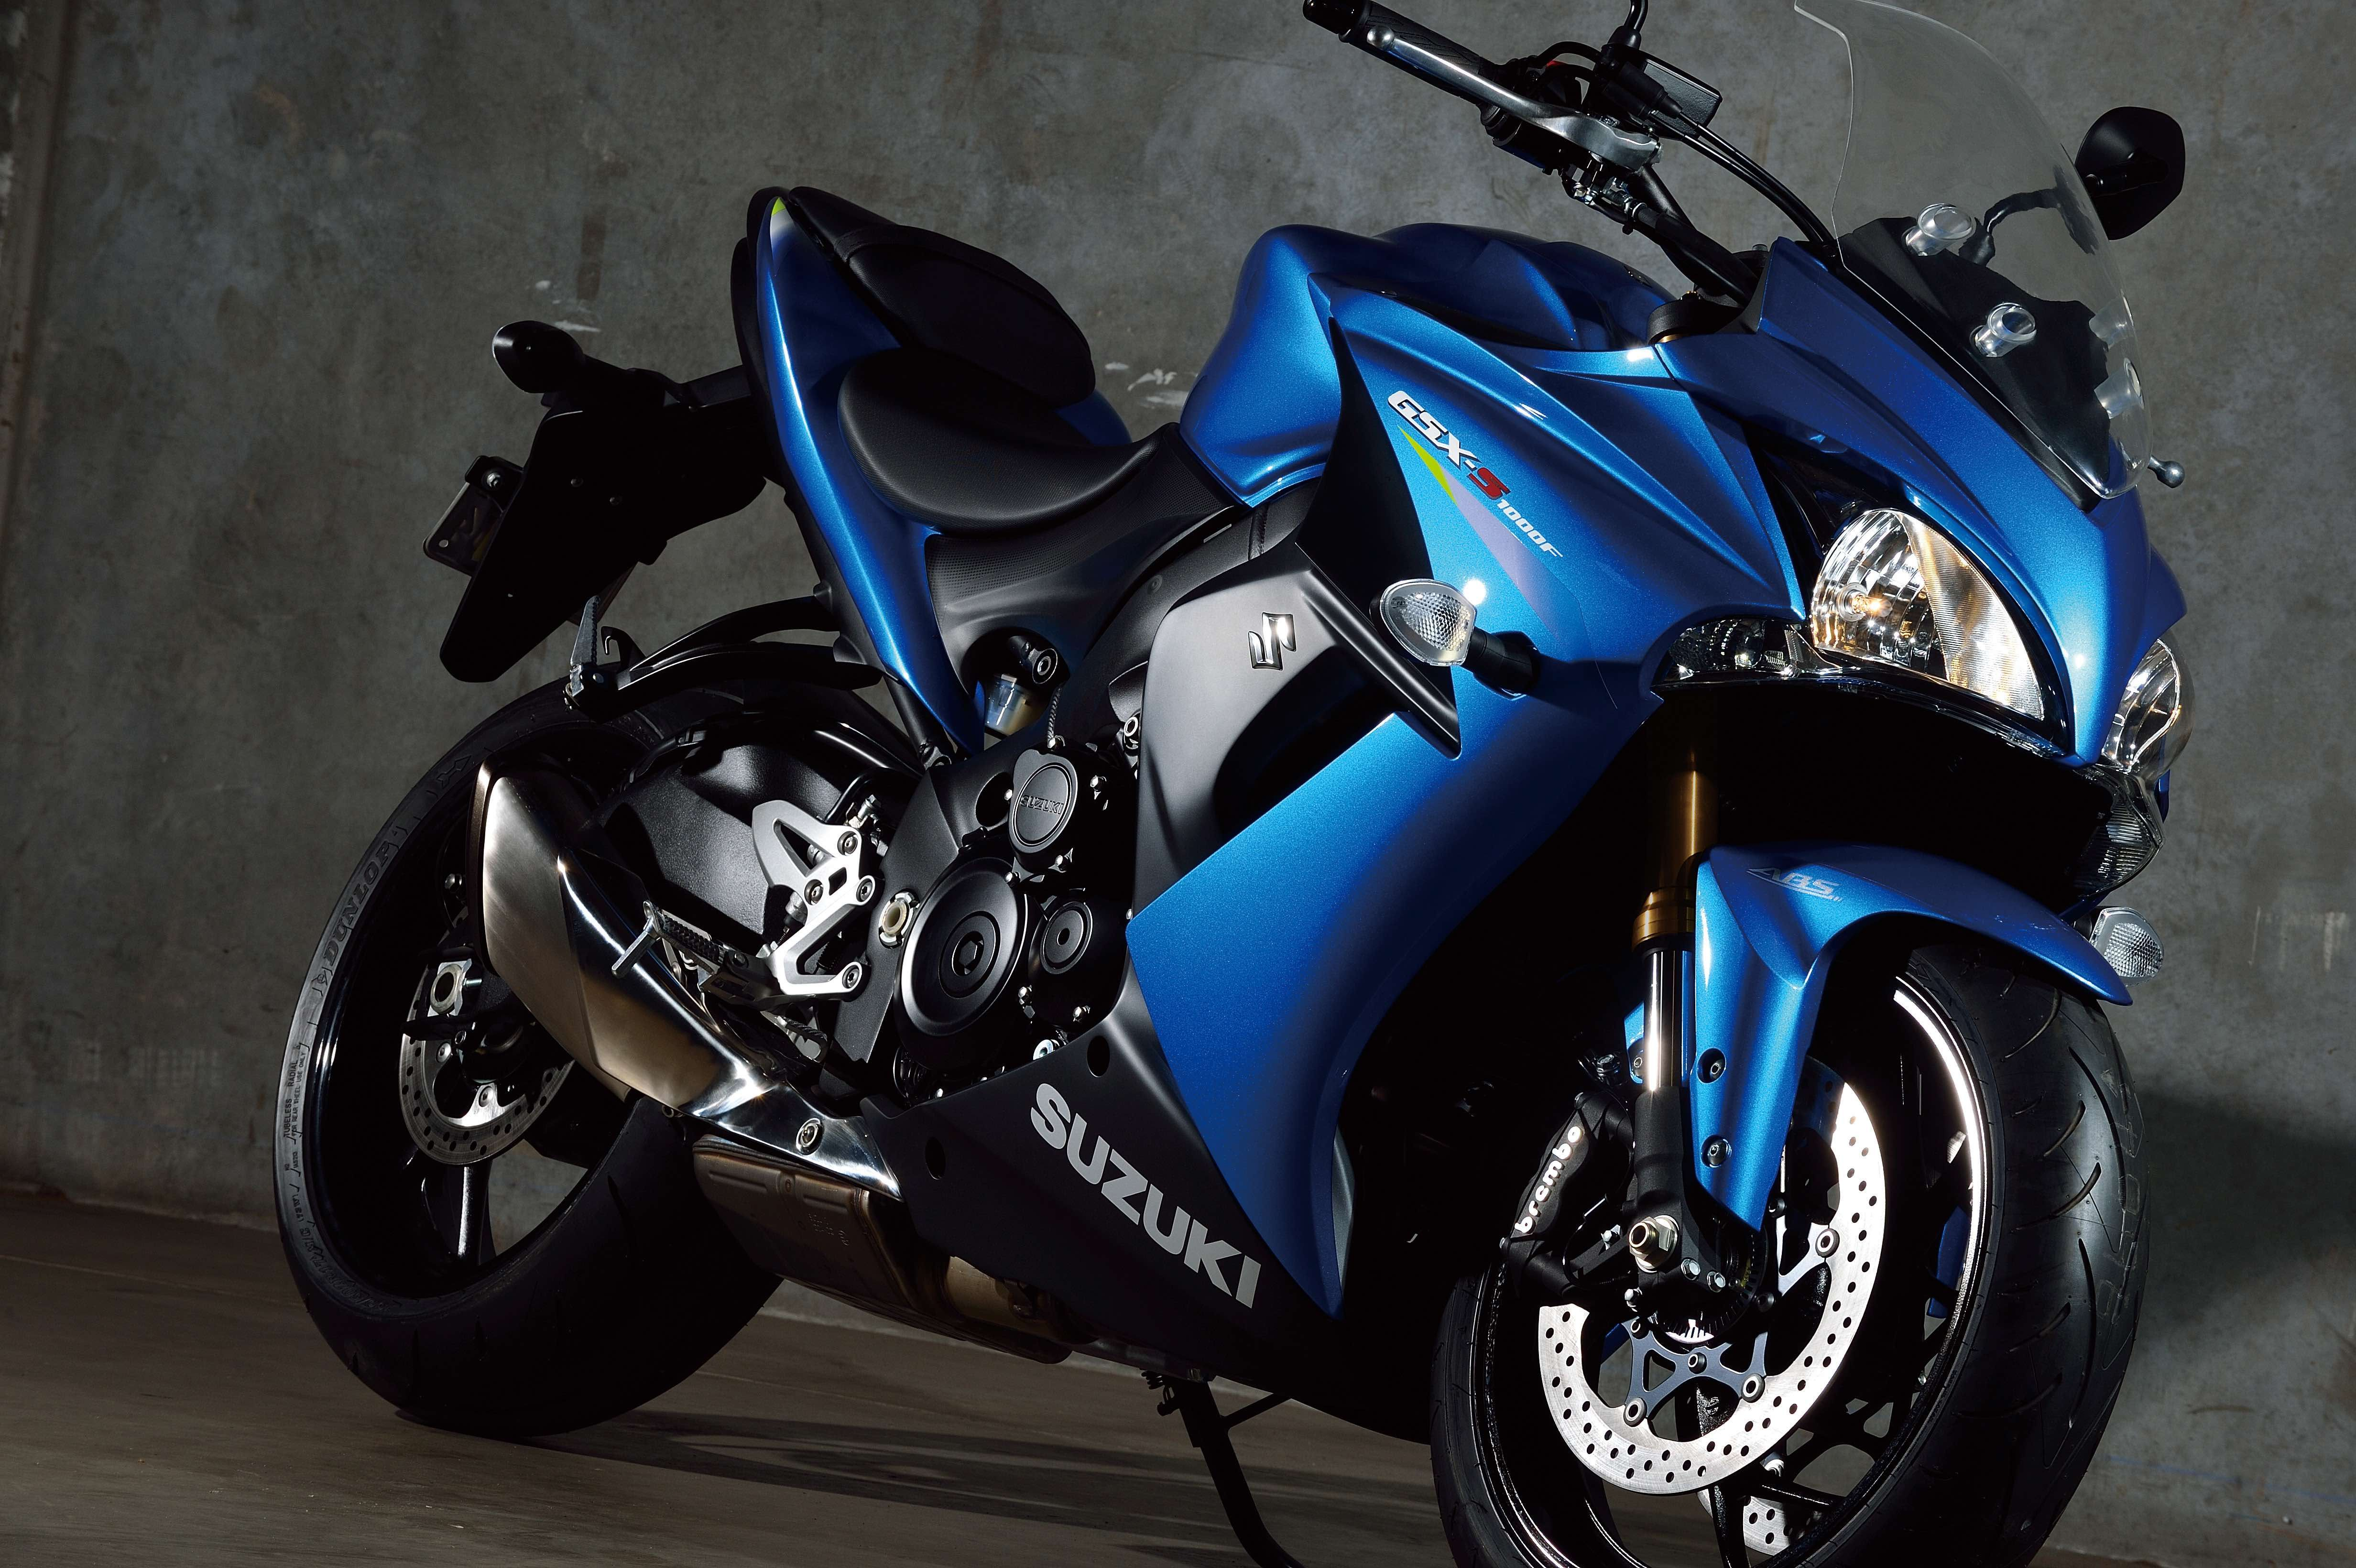 suzuki gsx s1000f owner 39 s bike review bemoto. Black Bedroom Furniture Sets. Home Design Ideas